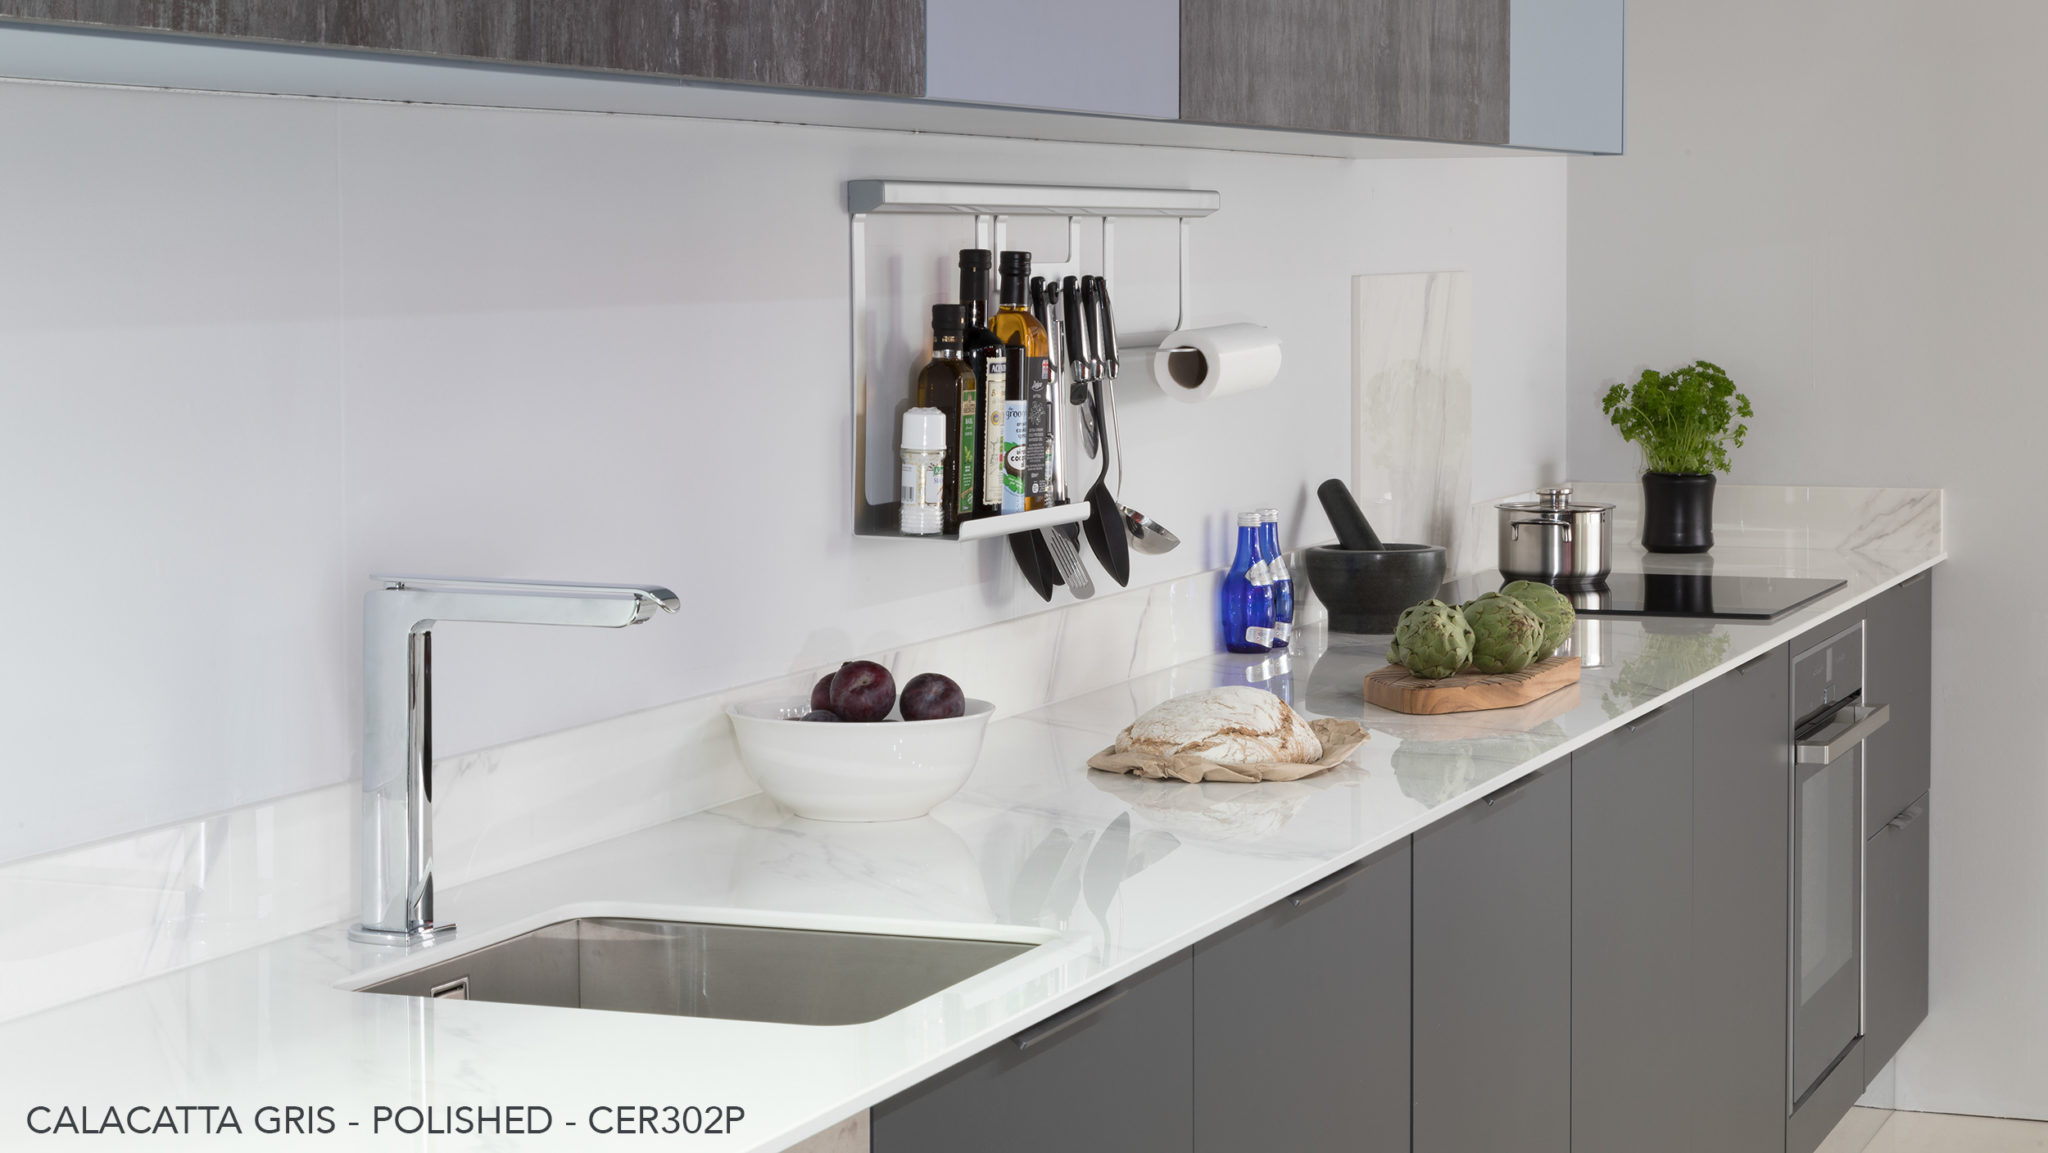 Ceralsio Calacatta Gris white/grey veined worktop with stainless steel kitchen accessories.